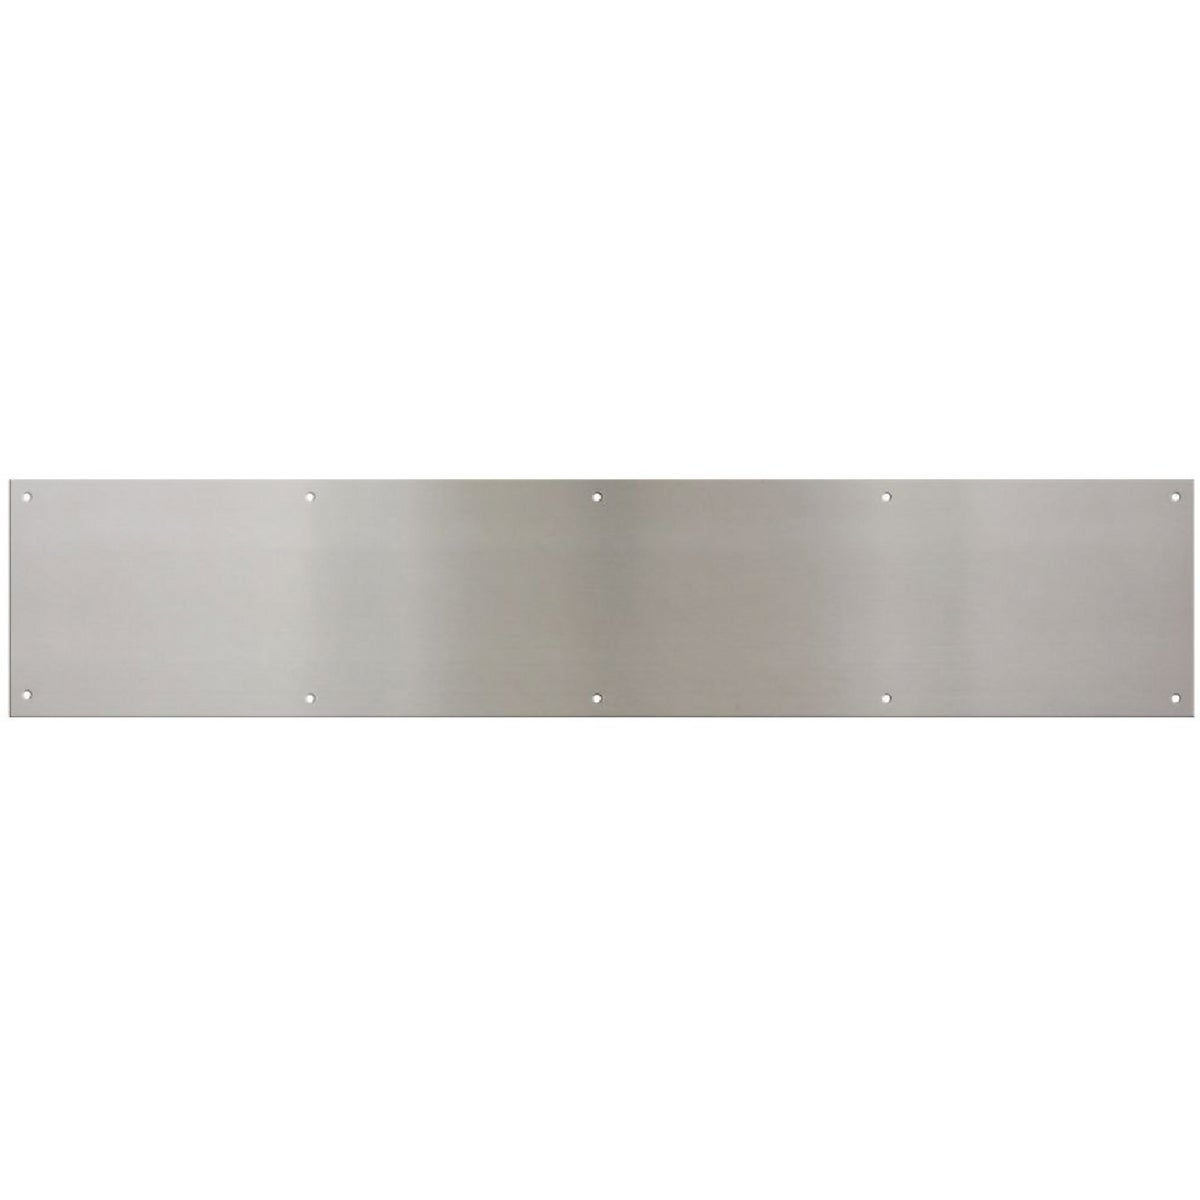 "6X30"" SN KICKPLATE - N325407 by National Mfg Co"